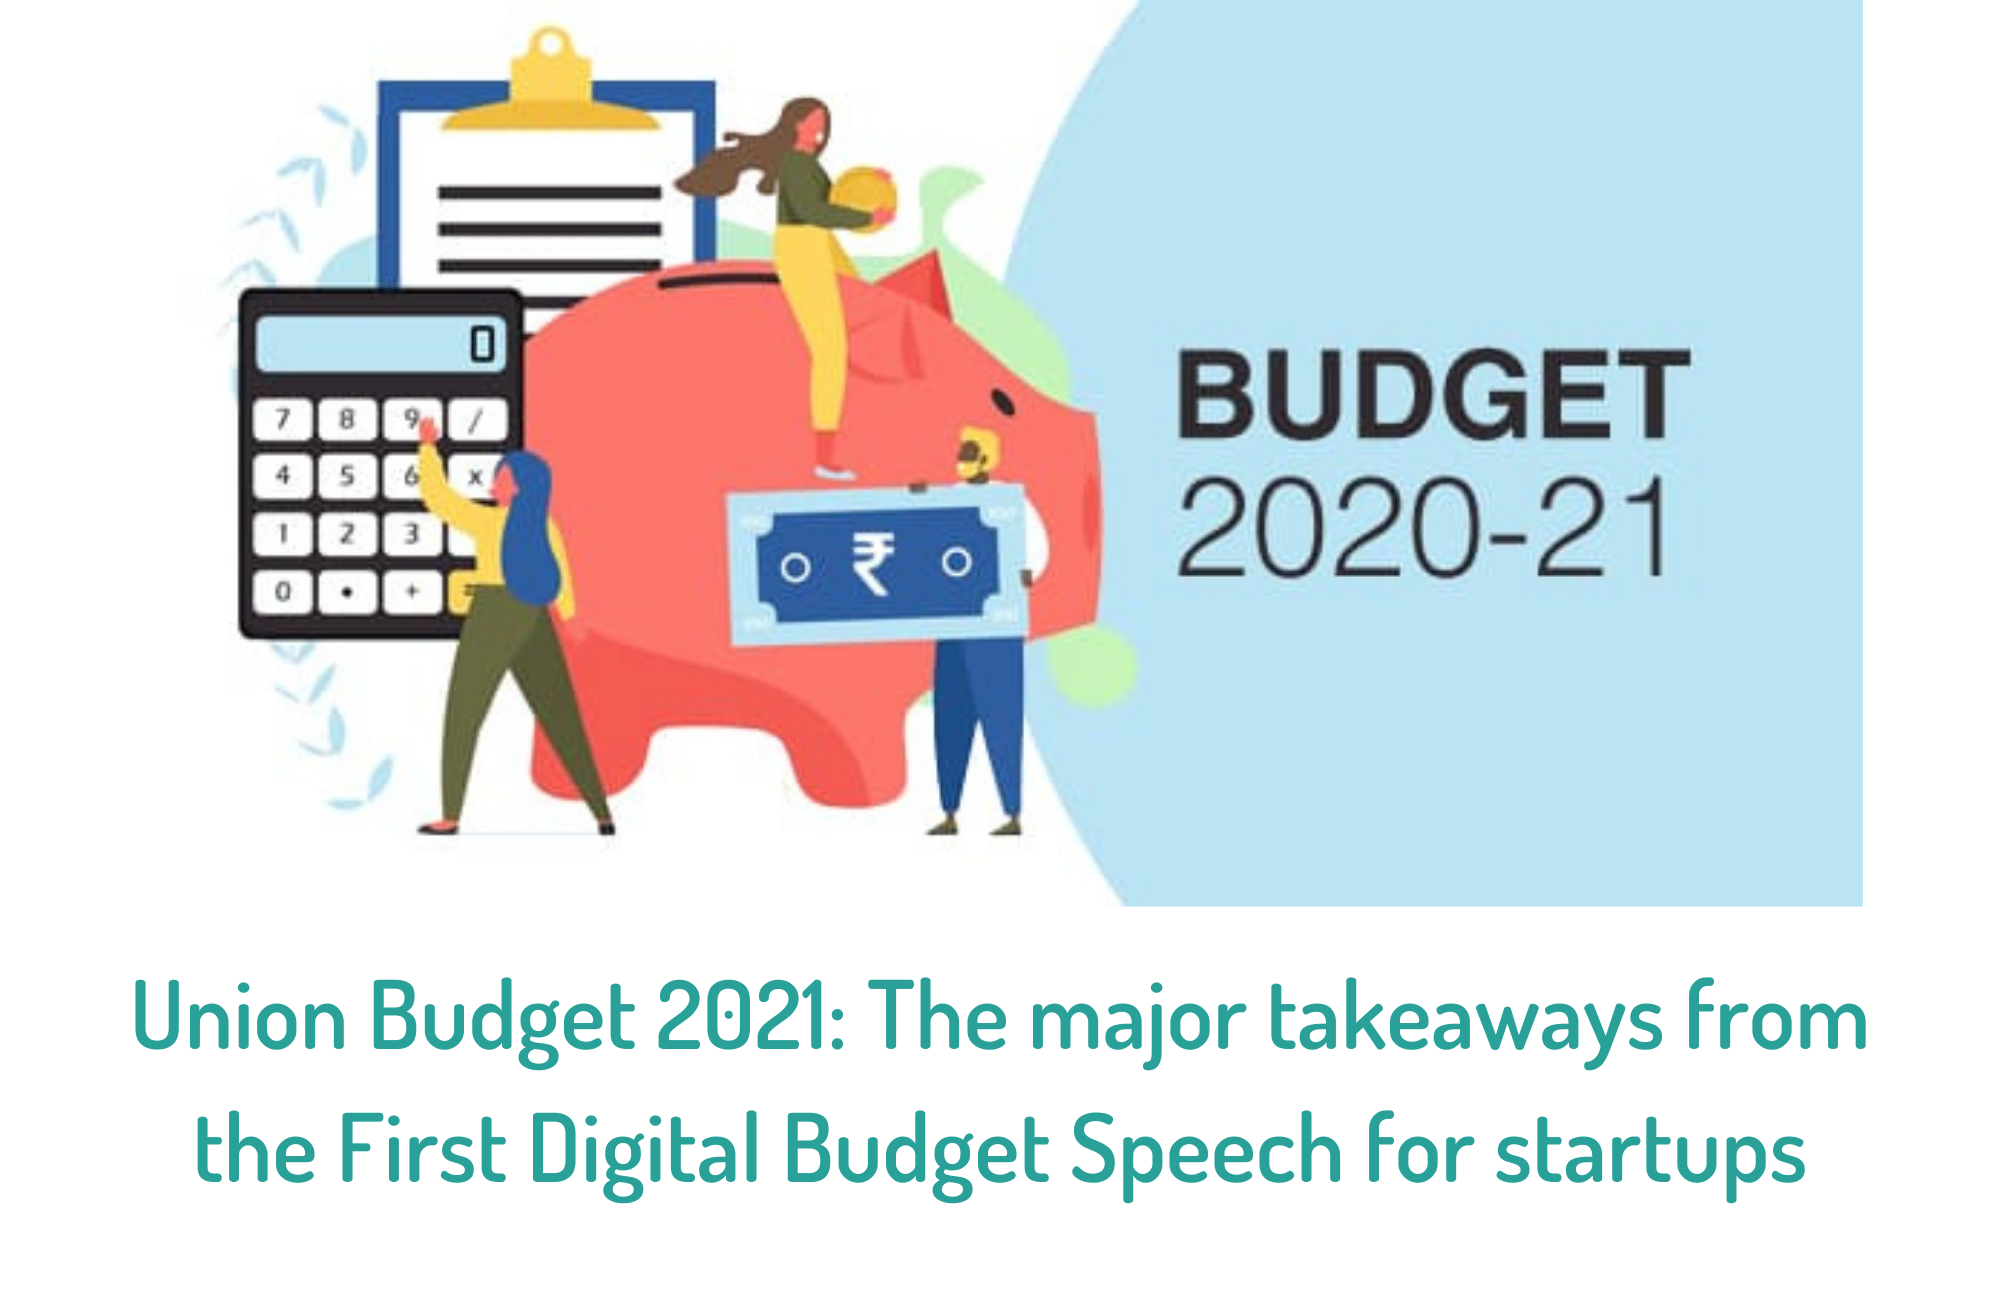 Union Budget 2021: The major takeaways from the First Digital Budget Speech forstartups